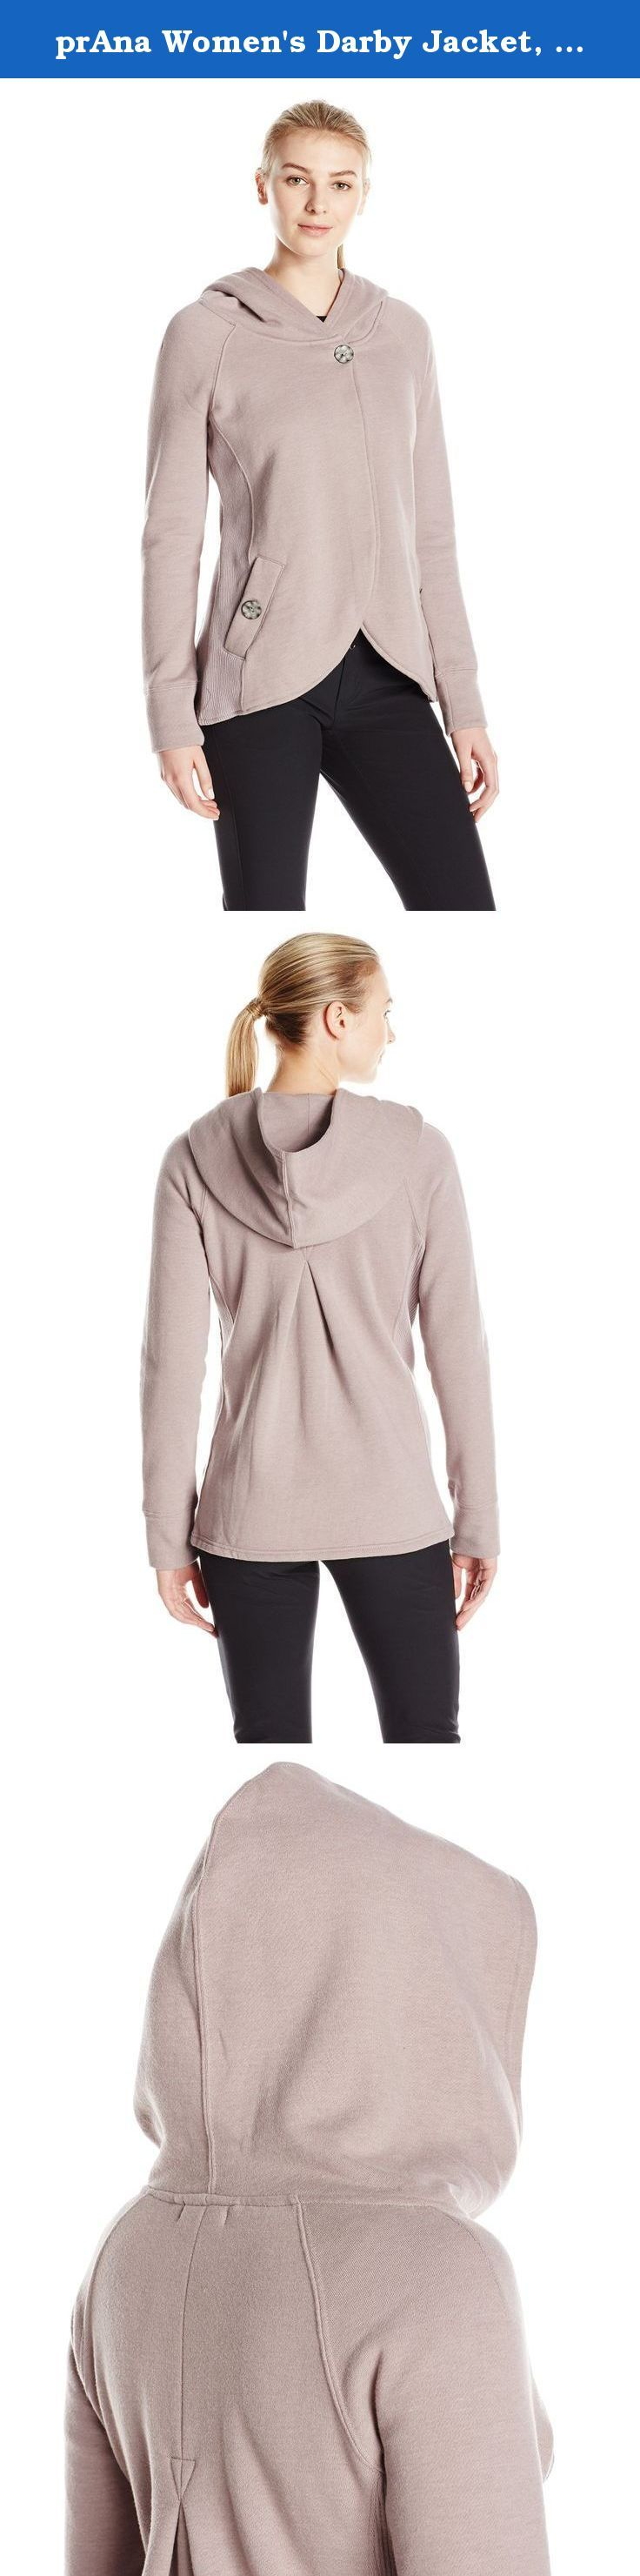 prAna Women's Darby Jacket, Malva Mauve, Small. The prAna Darby Jacket sports a stylish swing silhouette when fastened at its top button. Organic cotton blended fleece is a comfortable weight both day and night; put your hood up if it gets chilly.